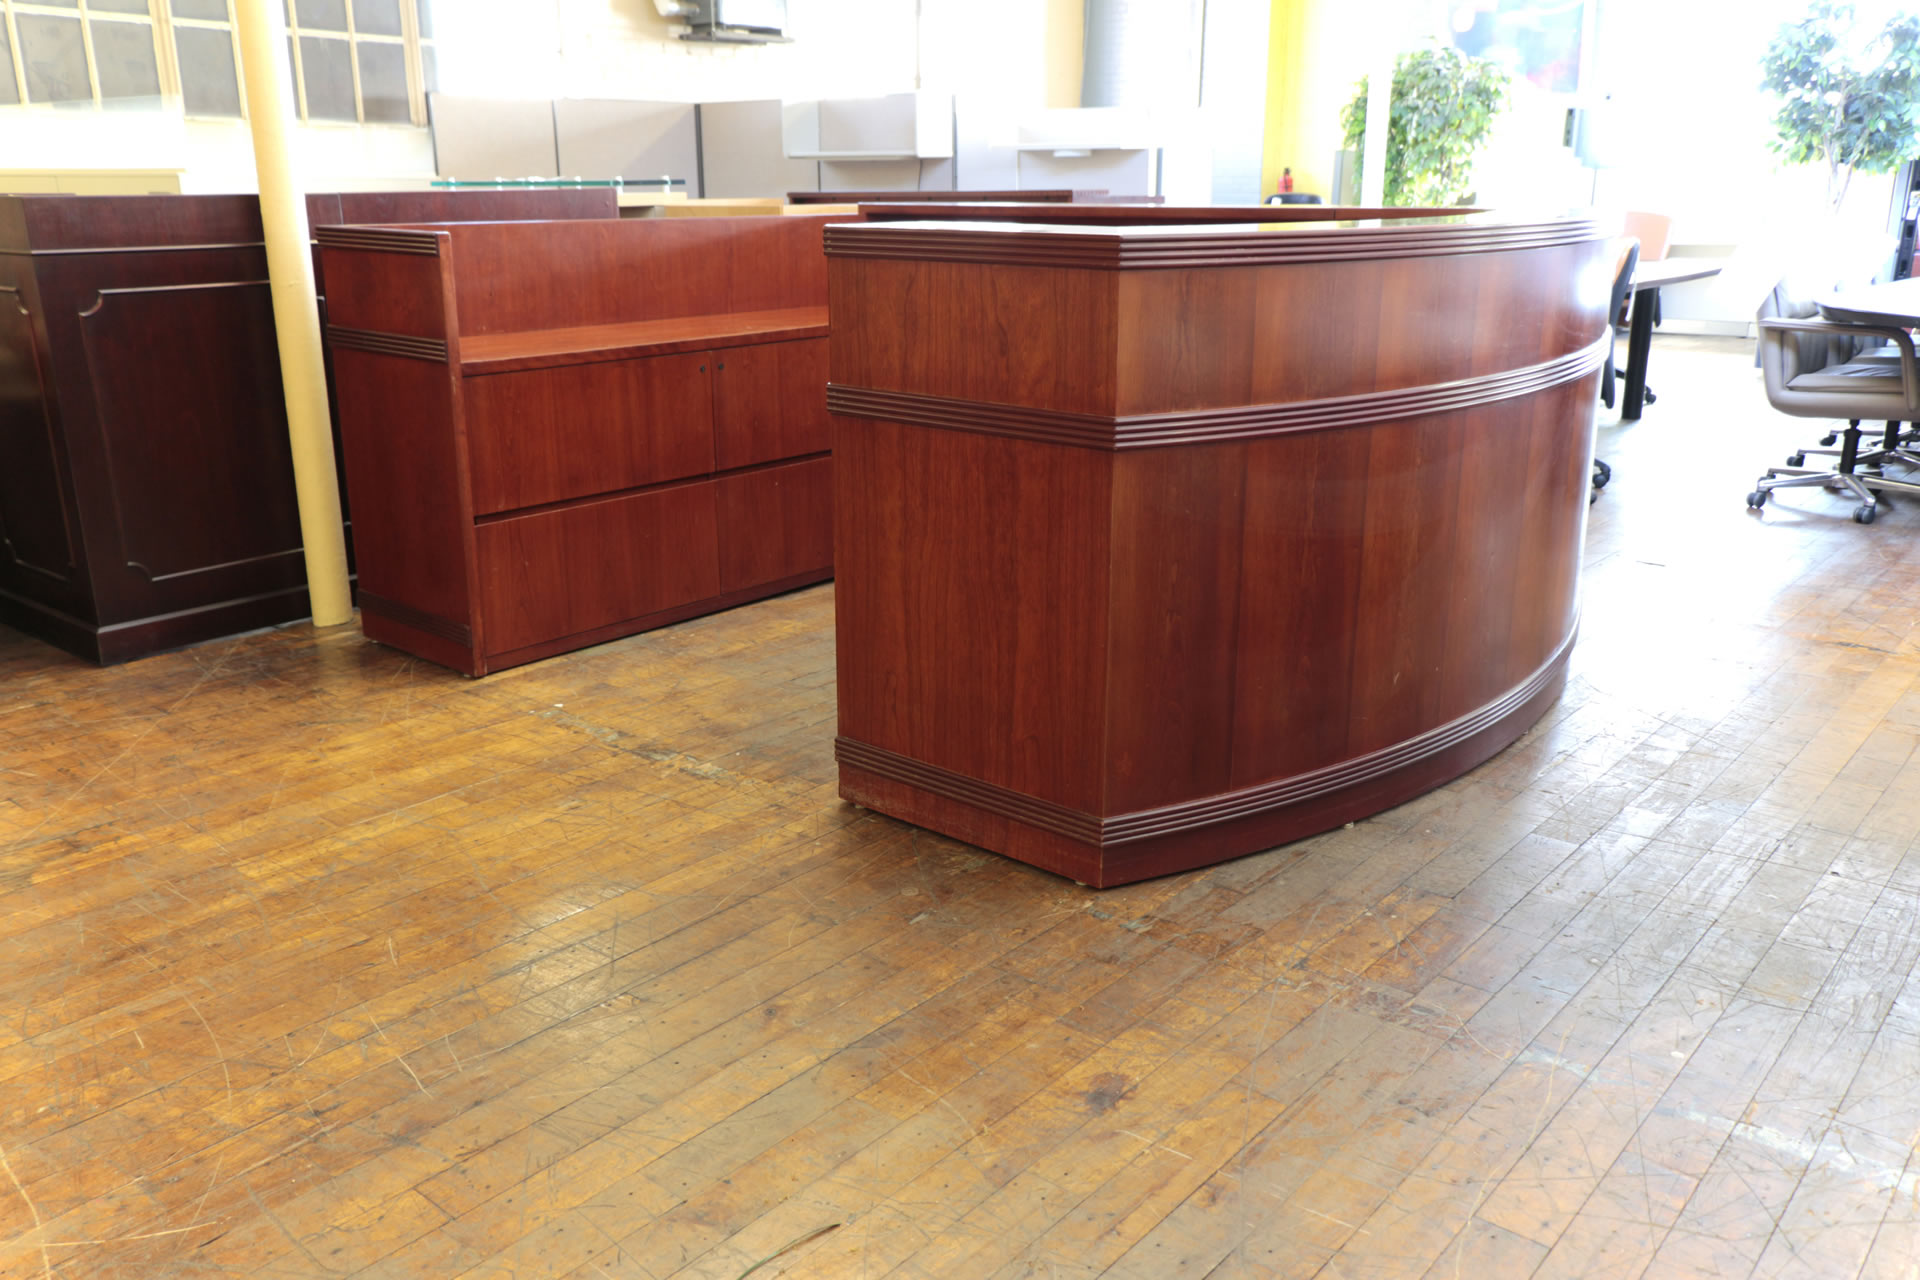 peartreeofficefurniture_peartreeofficefurniture_mg_4869.jpg